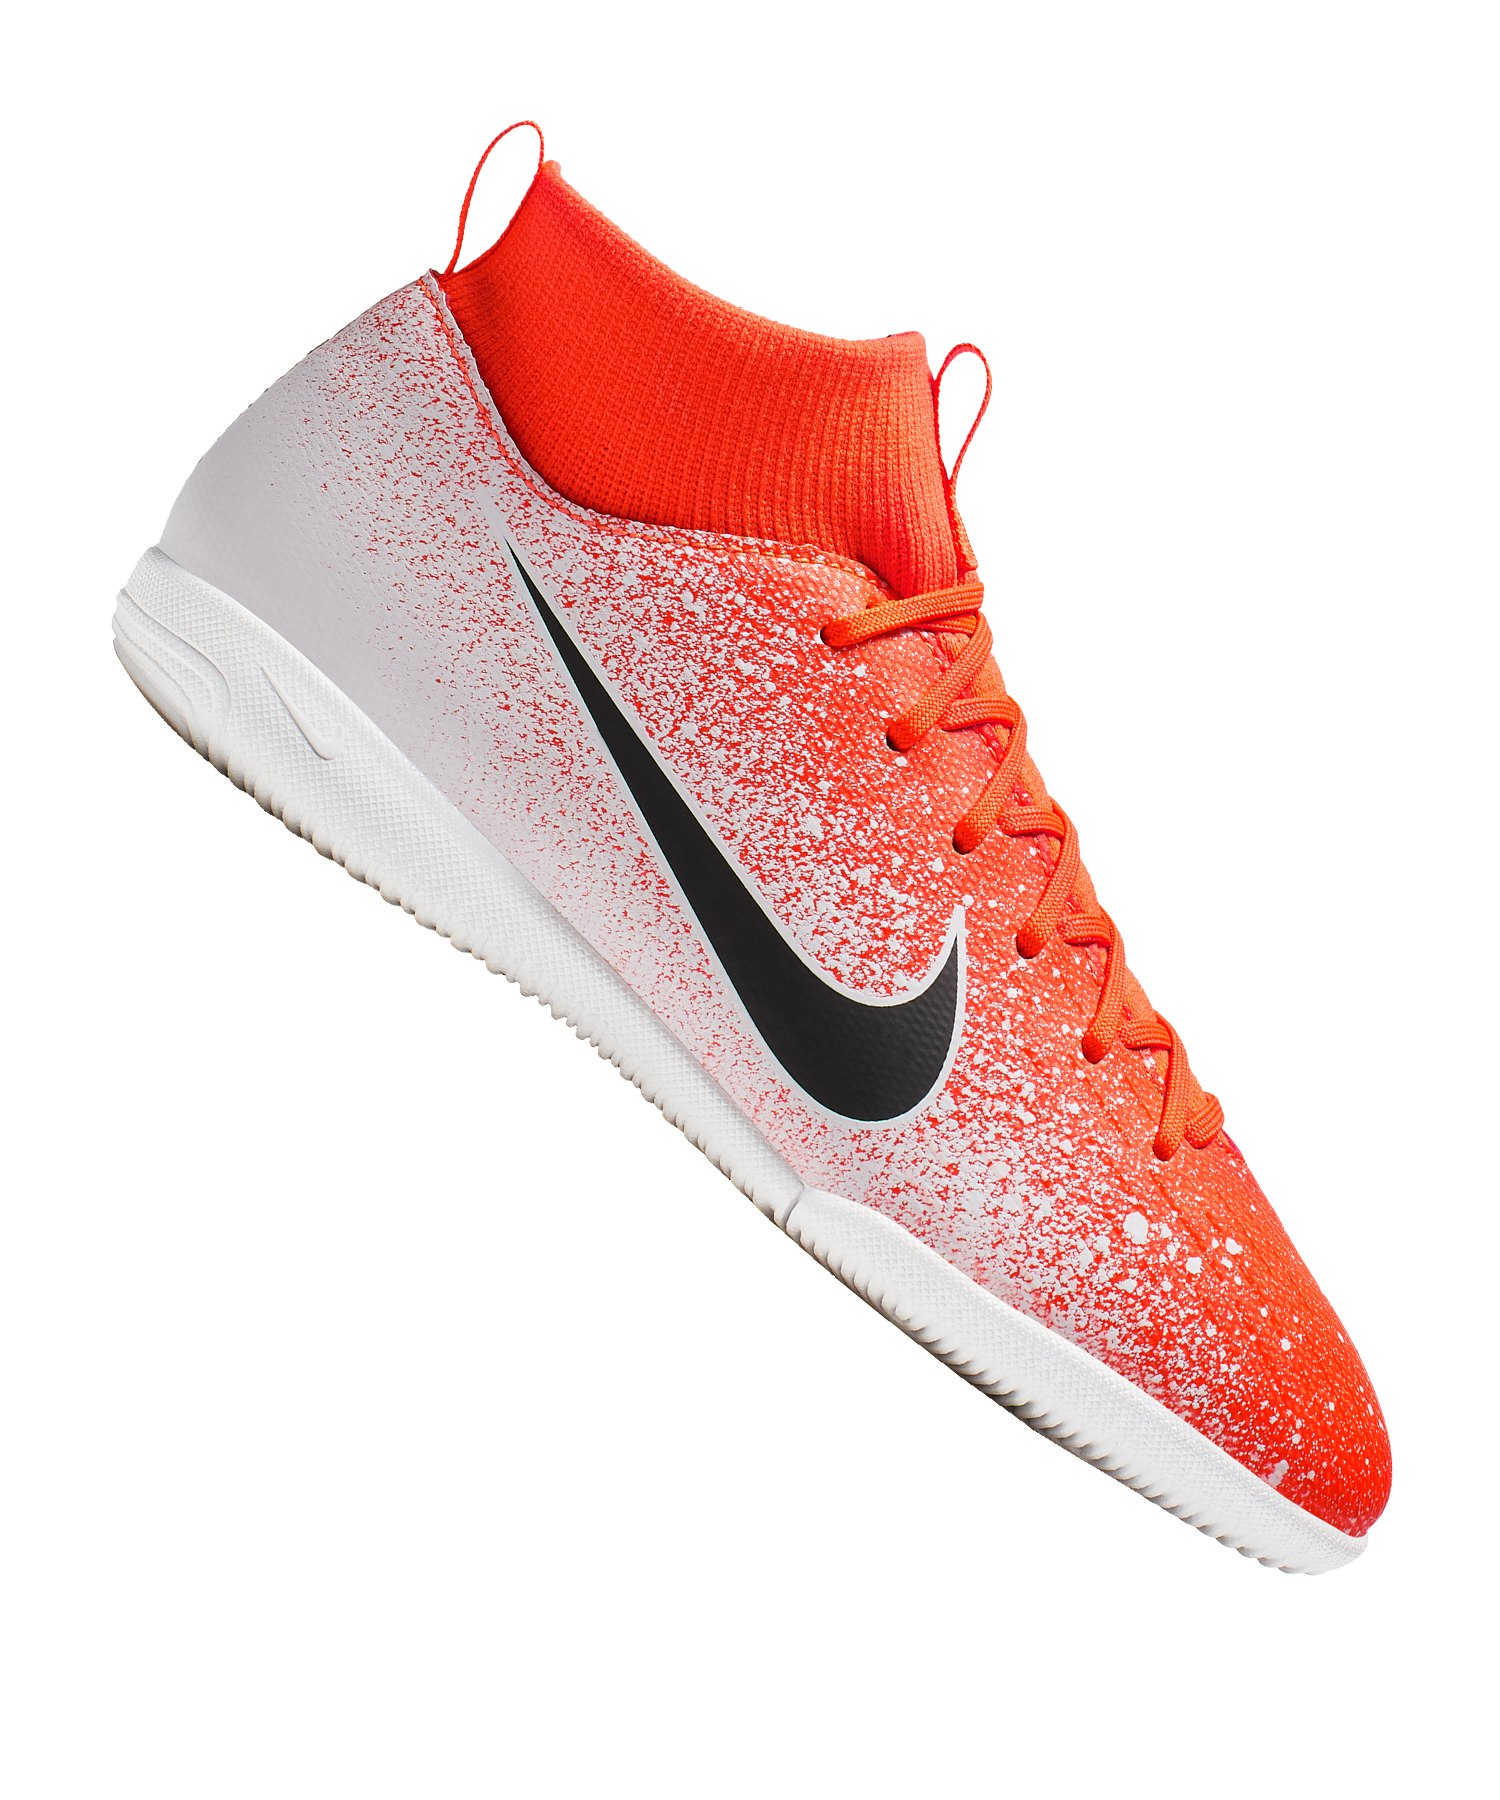 Nike Mercurial SuperflyX VI Academy DF IC Kids 801 - Orange